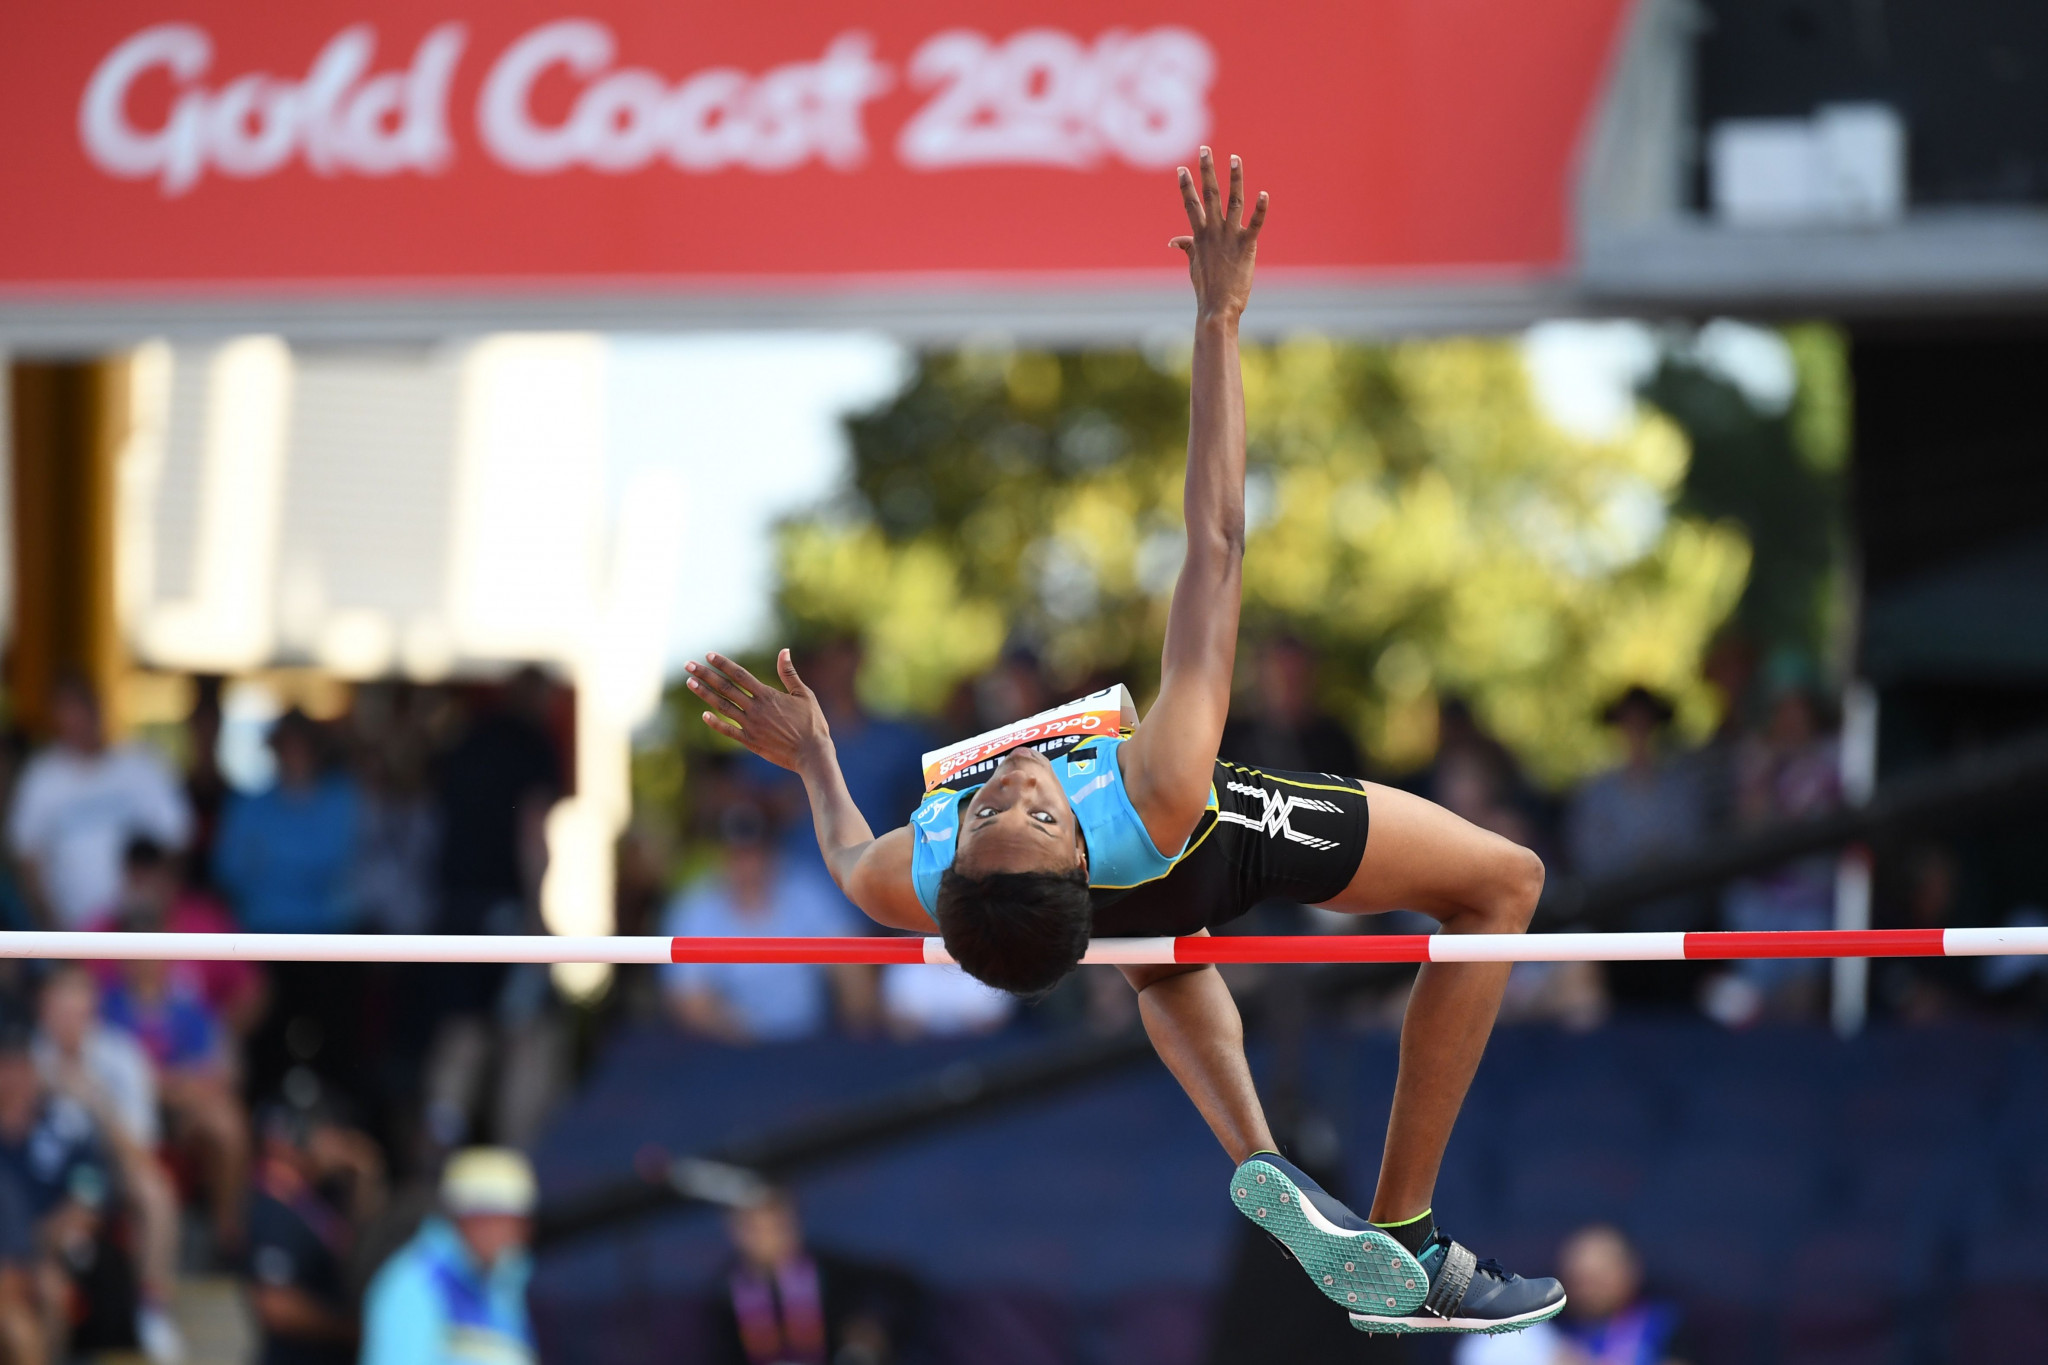 St Lucia 56-year wait for Commonwealth Games gold medal ended with Spencer victory in high jump